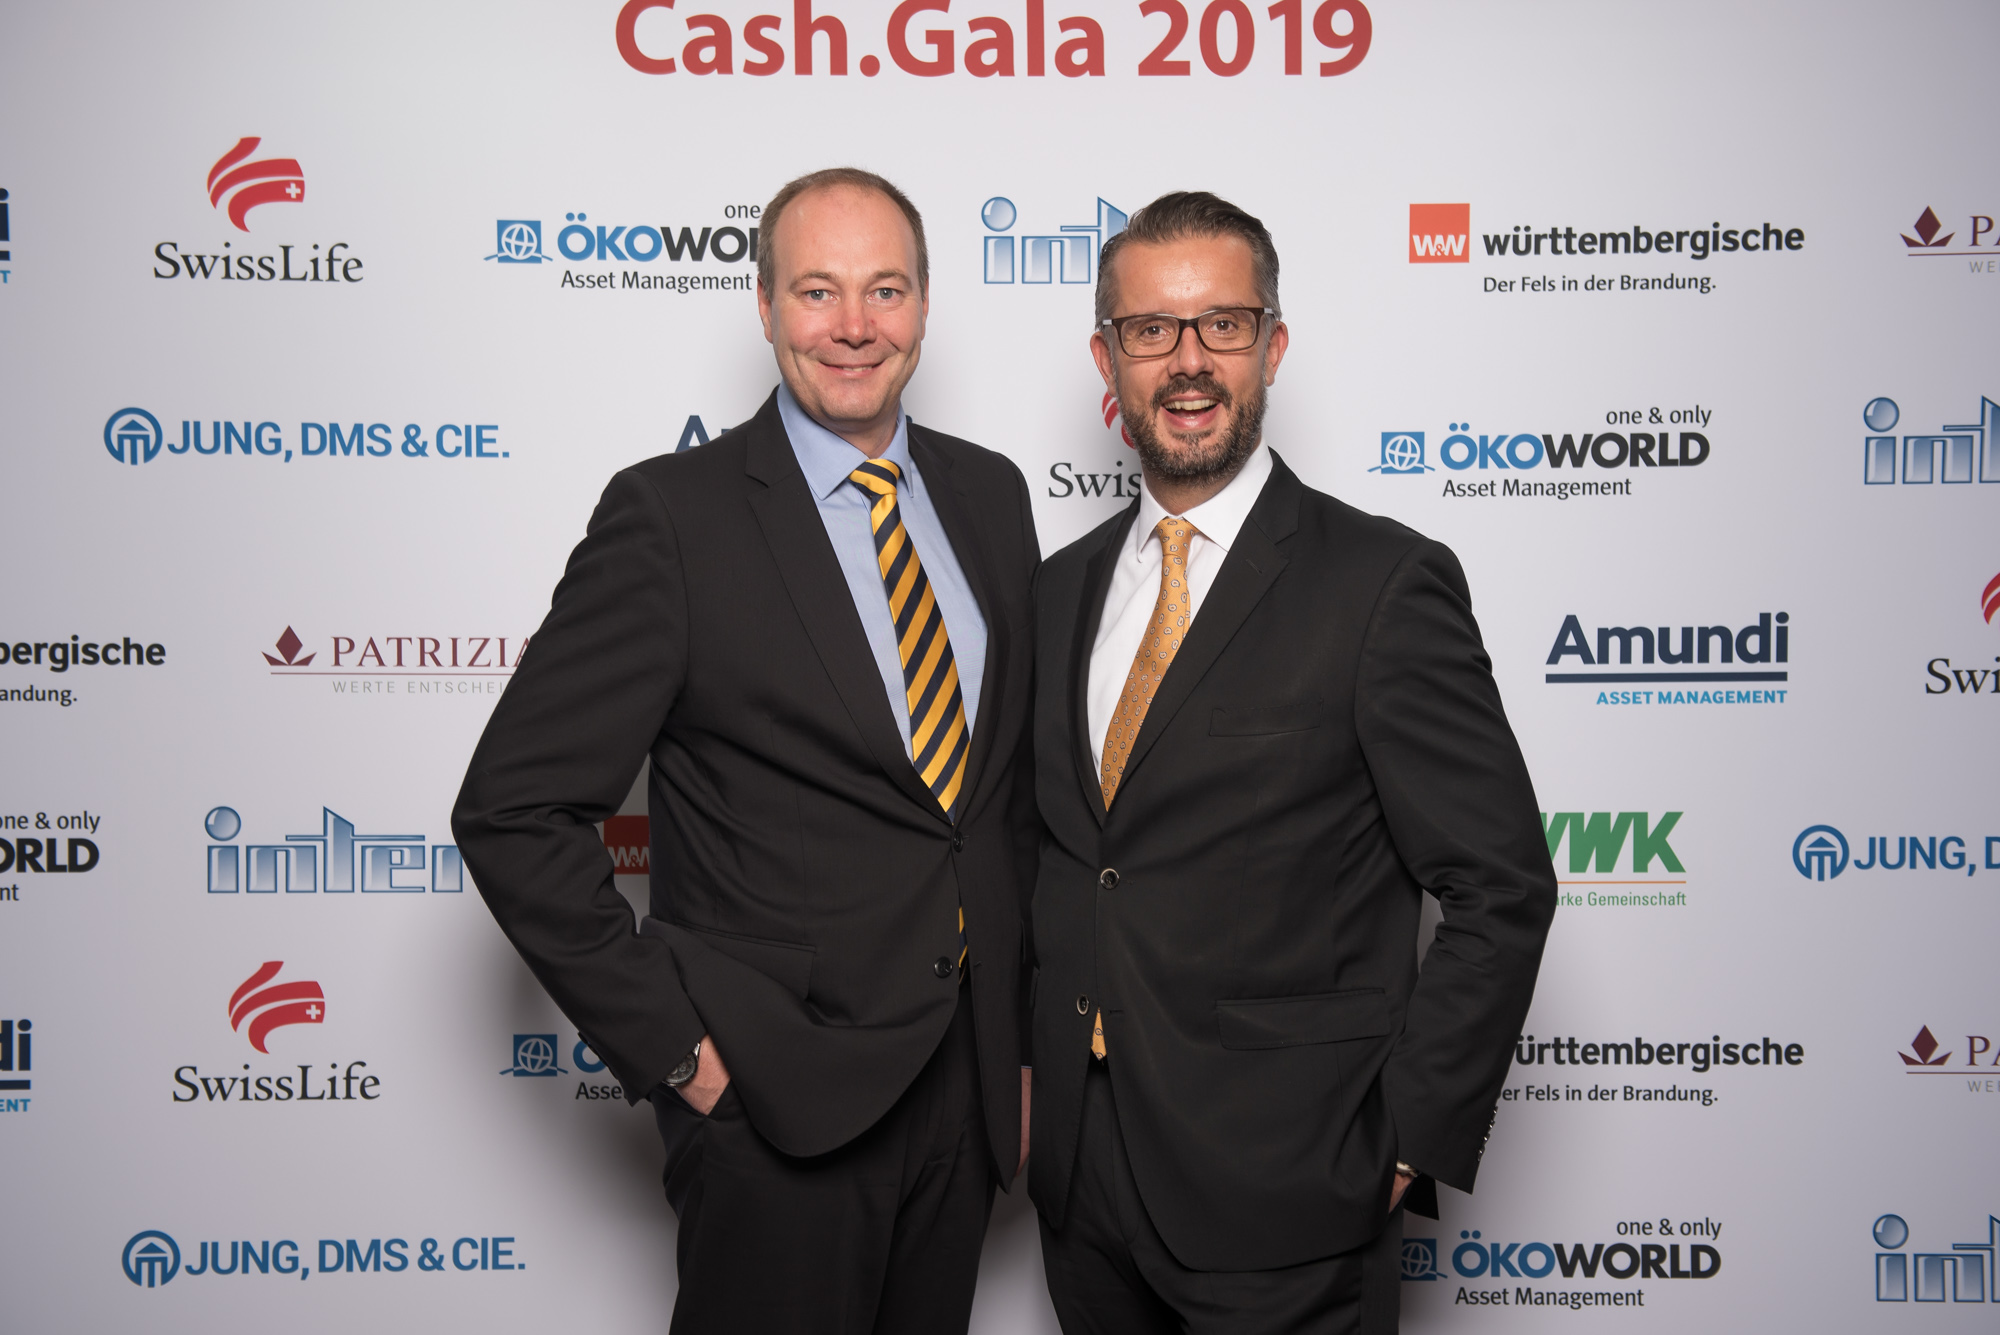 CashGala 2019 0025 AM DSC7014 in Cash.Gala 2019